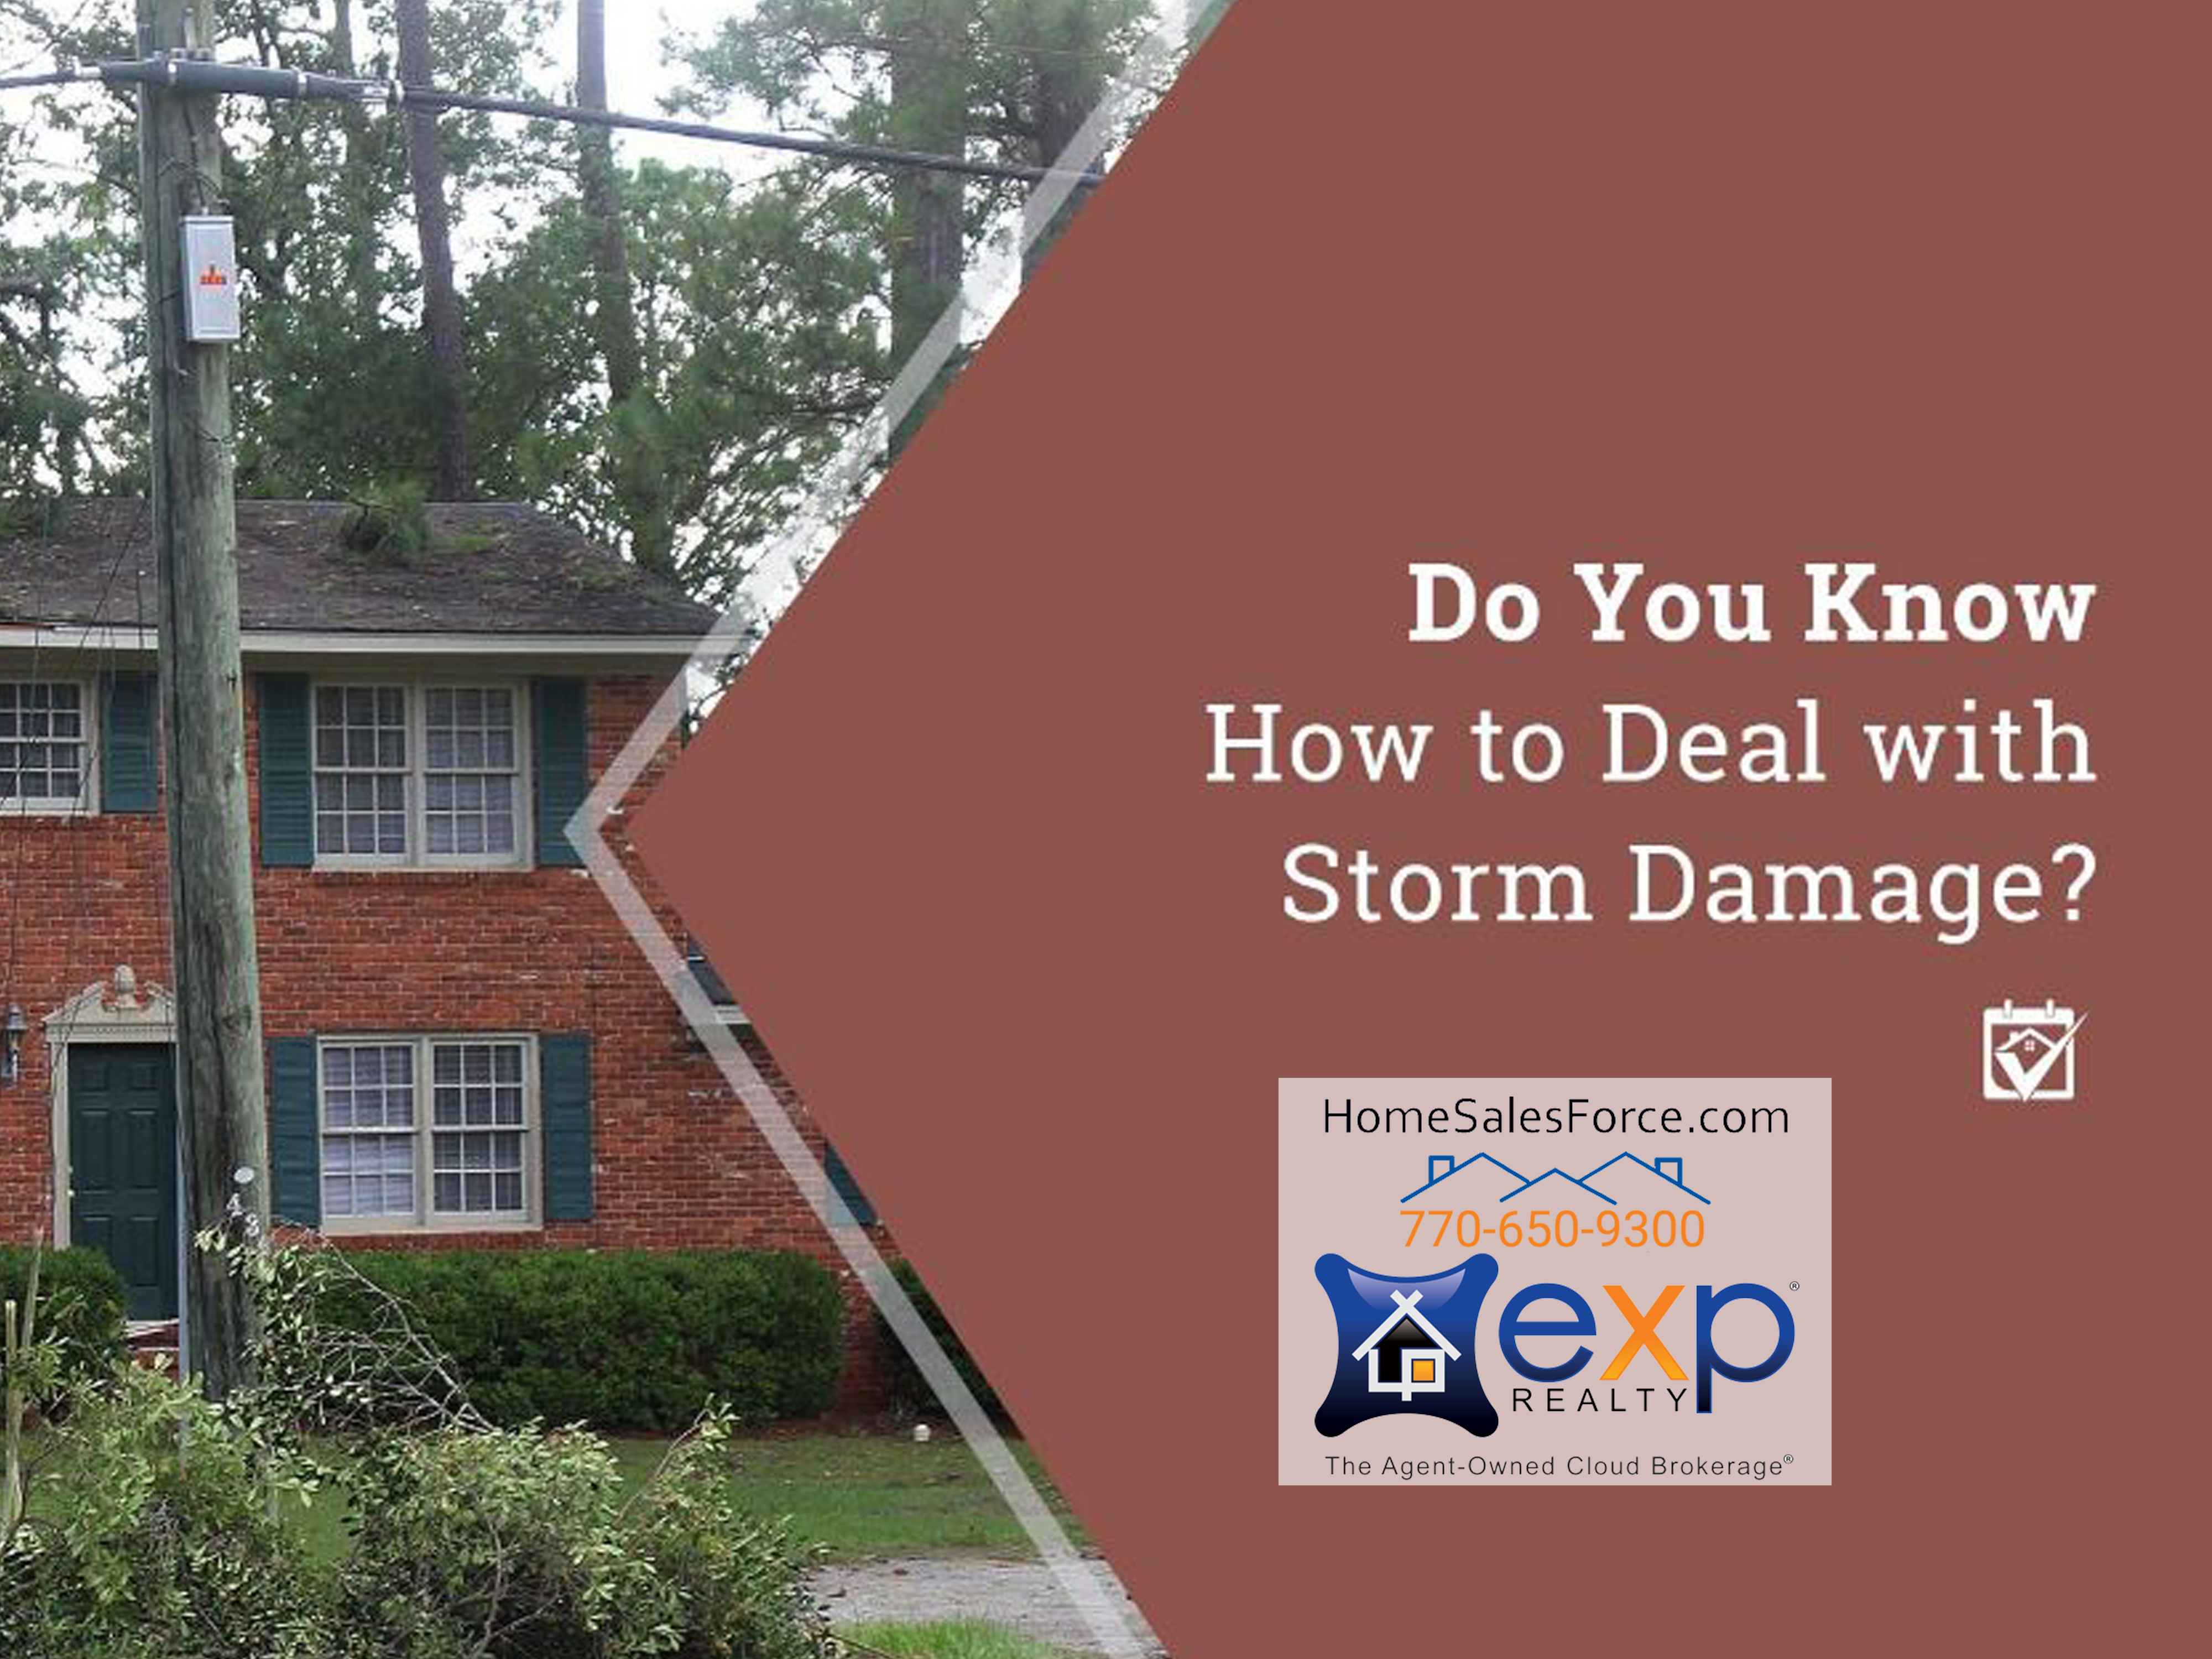 Do You Know How to Deal with Storm Damage